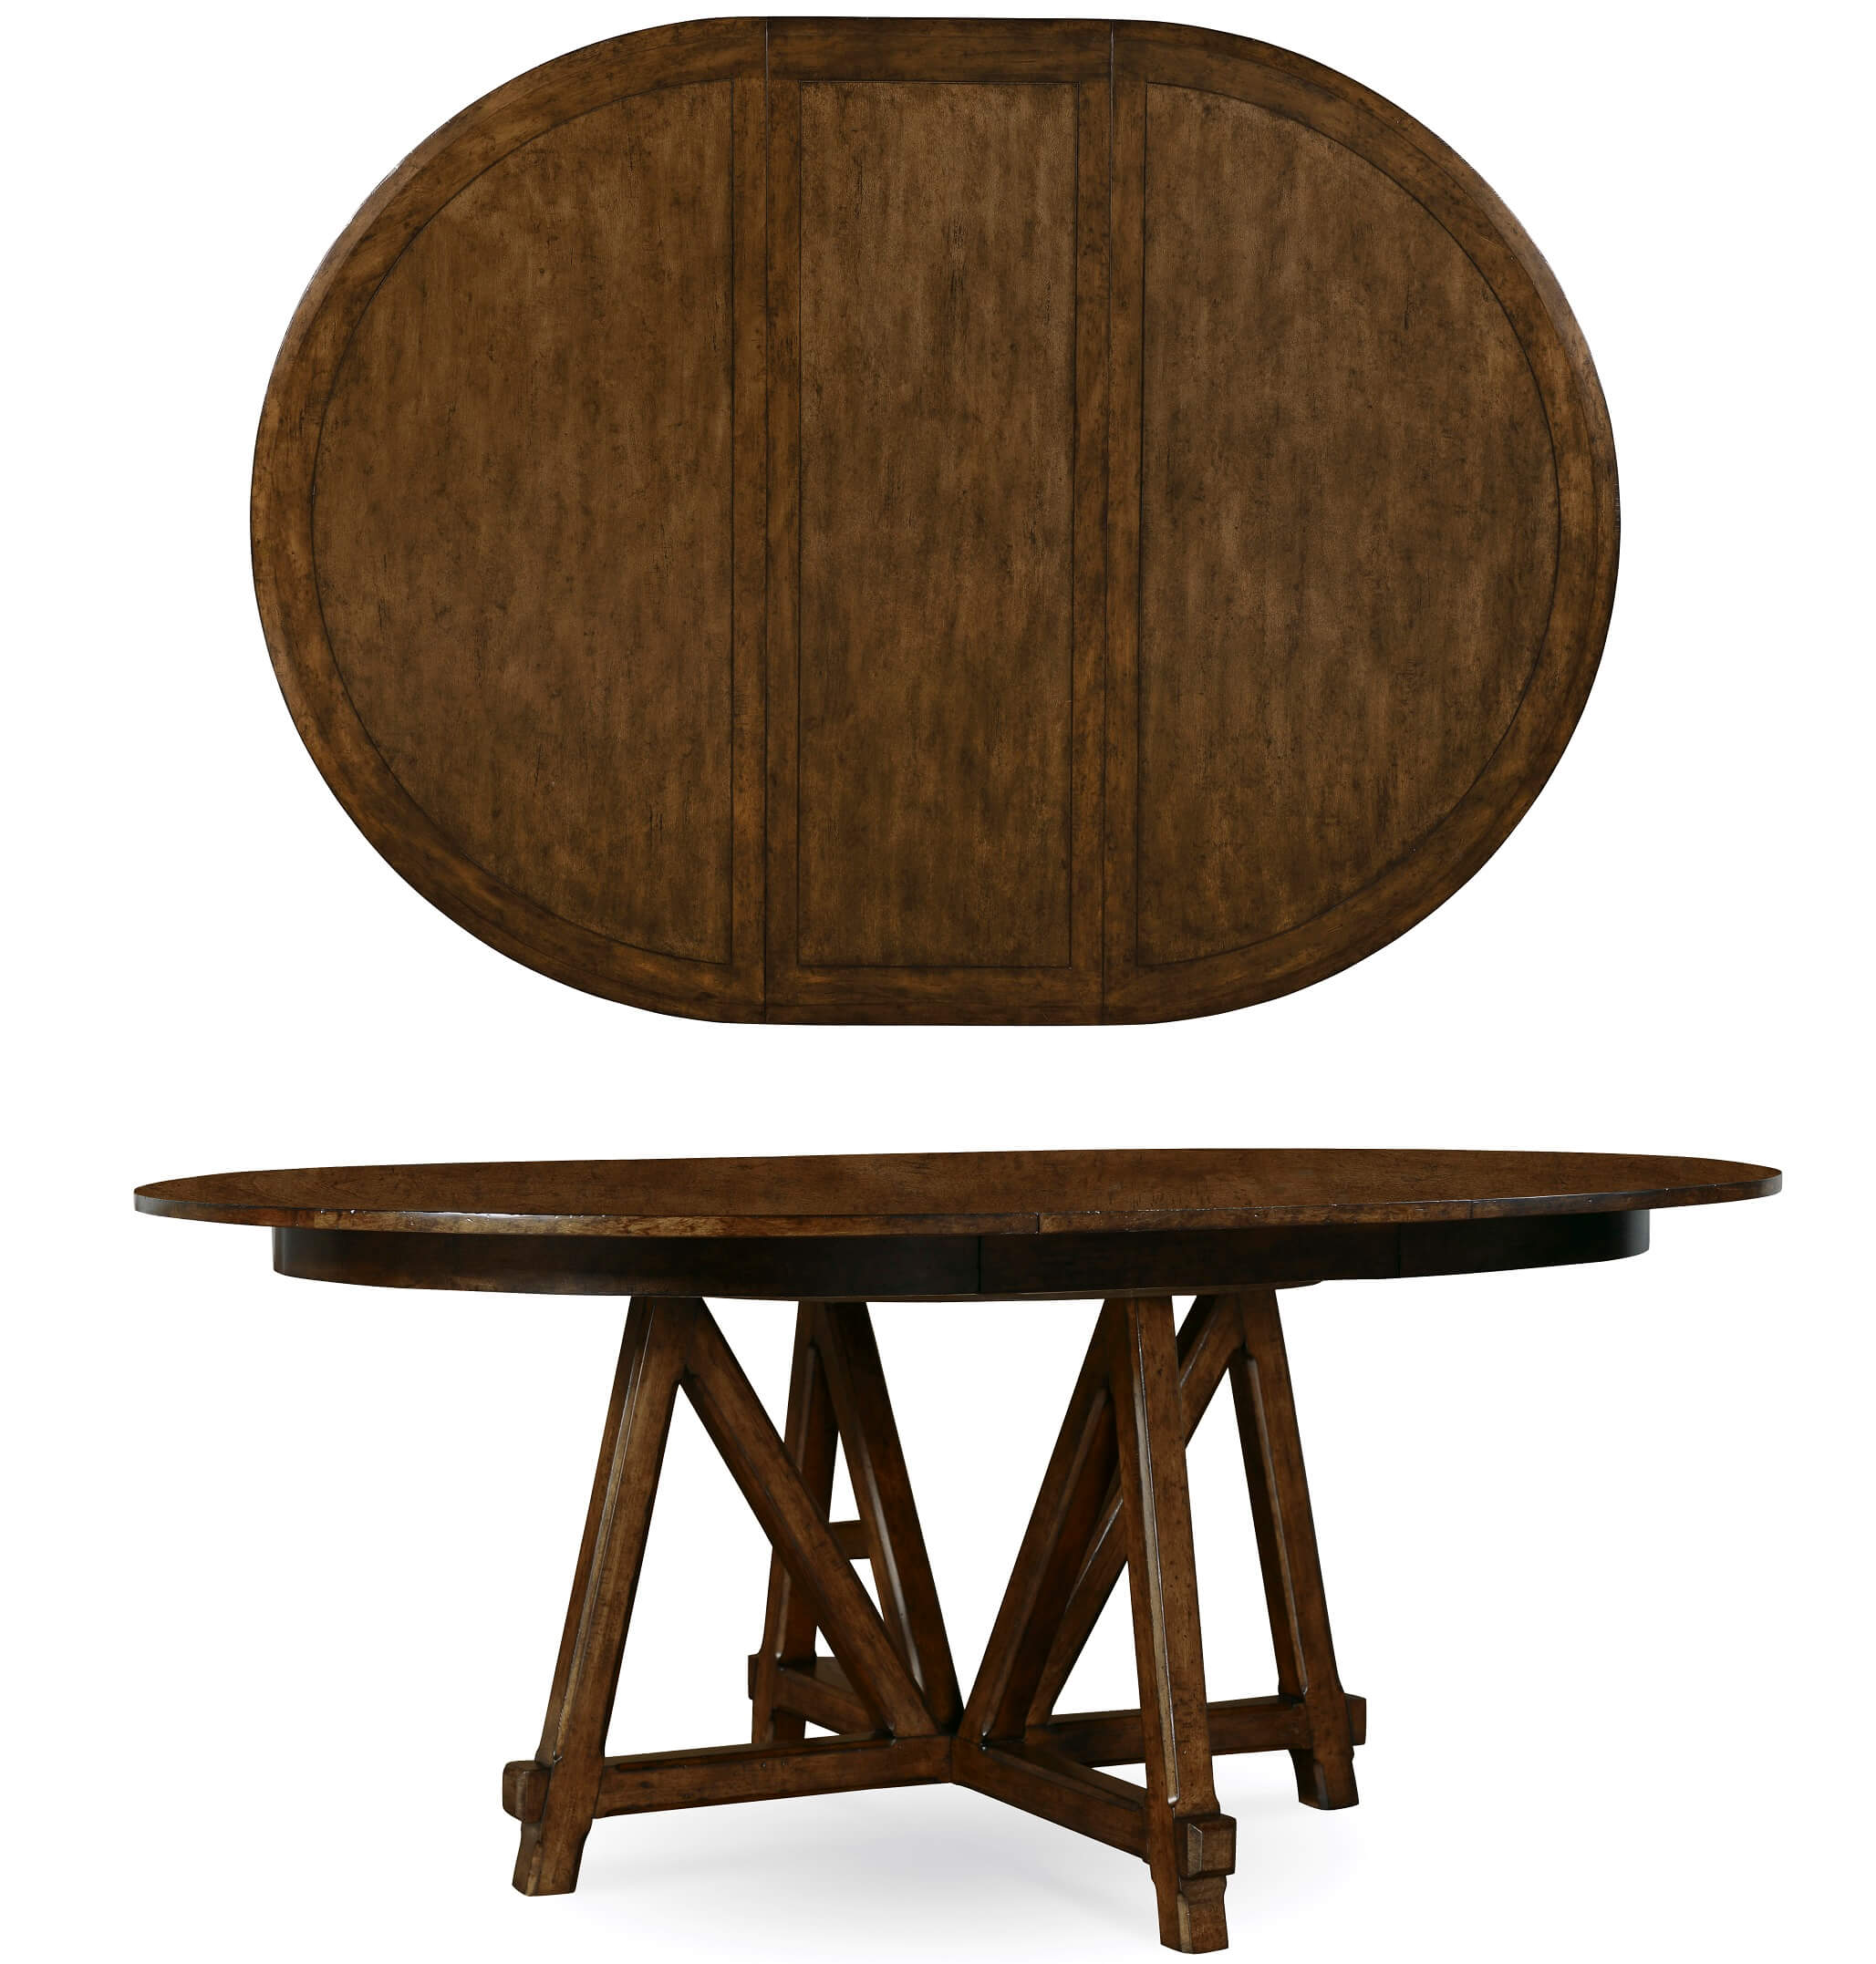 Echo Park Trestle Round To Oval Dining Table By ART - Oval trestle dining table